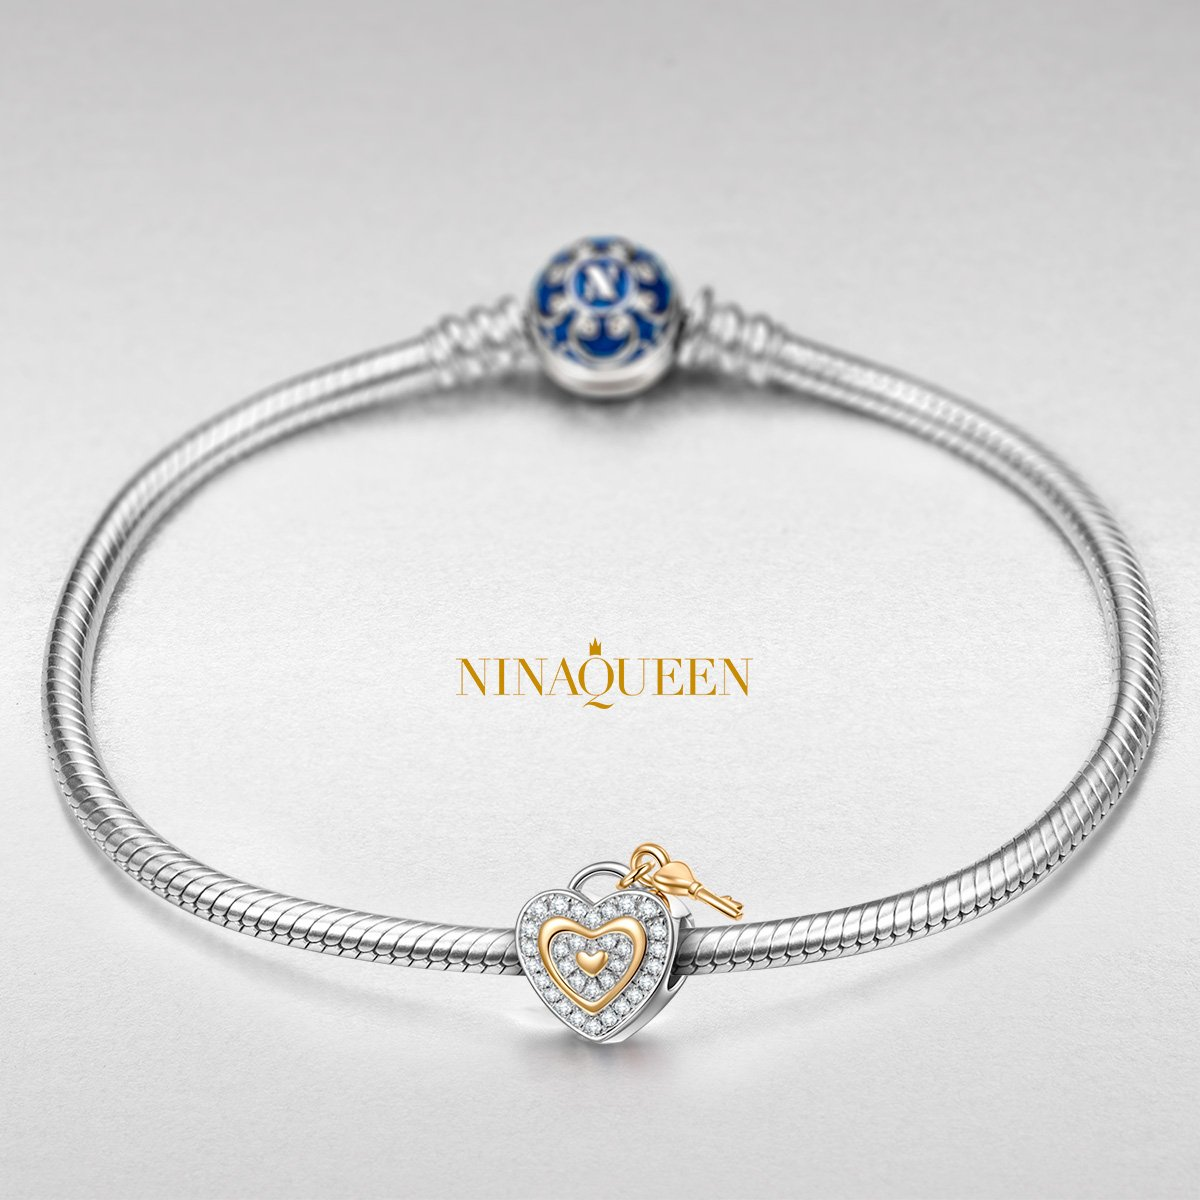 NINAQUEEN 925 Sterling Silver Charms Anniversary s Jewelry Gifts with Fine Gifts Packing, Gold Plated Heart Key Beads Engraved Love You Forever, Suitable for Bracelet for Her